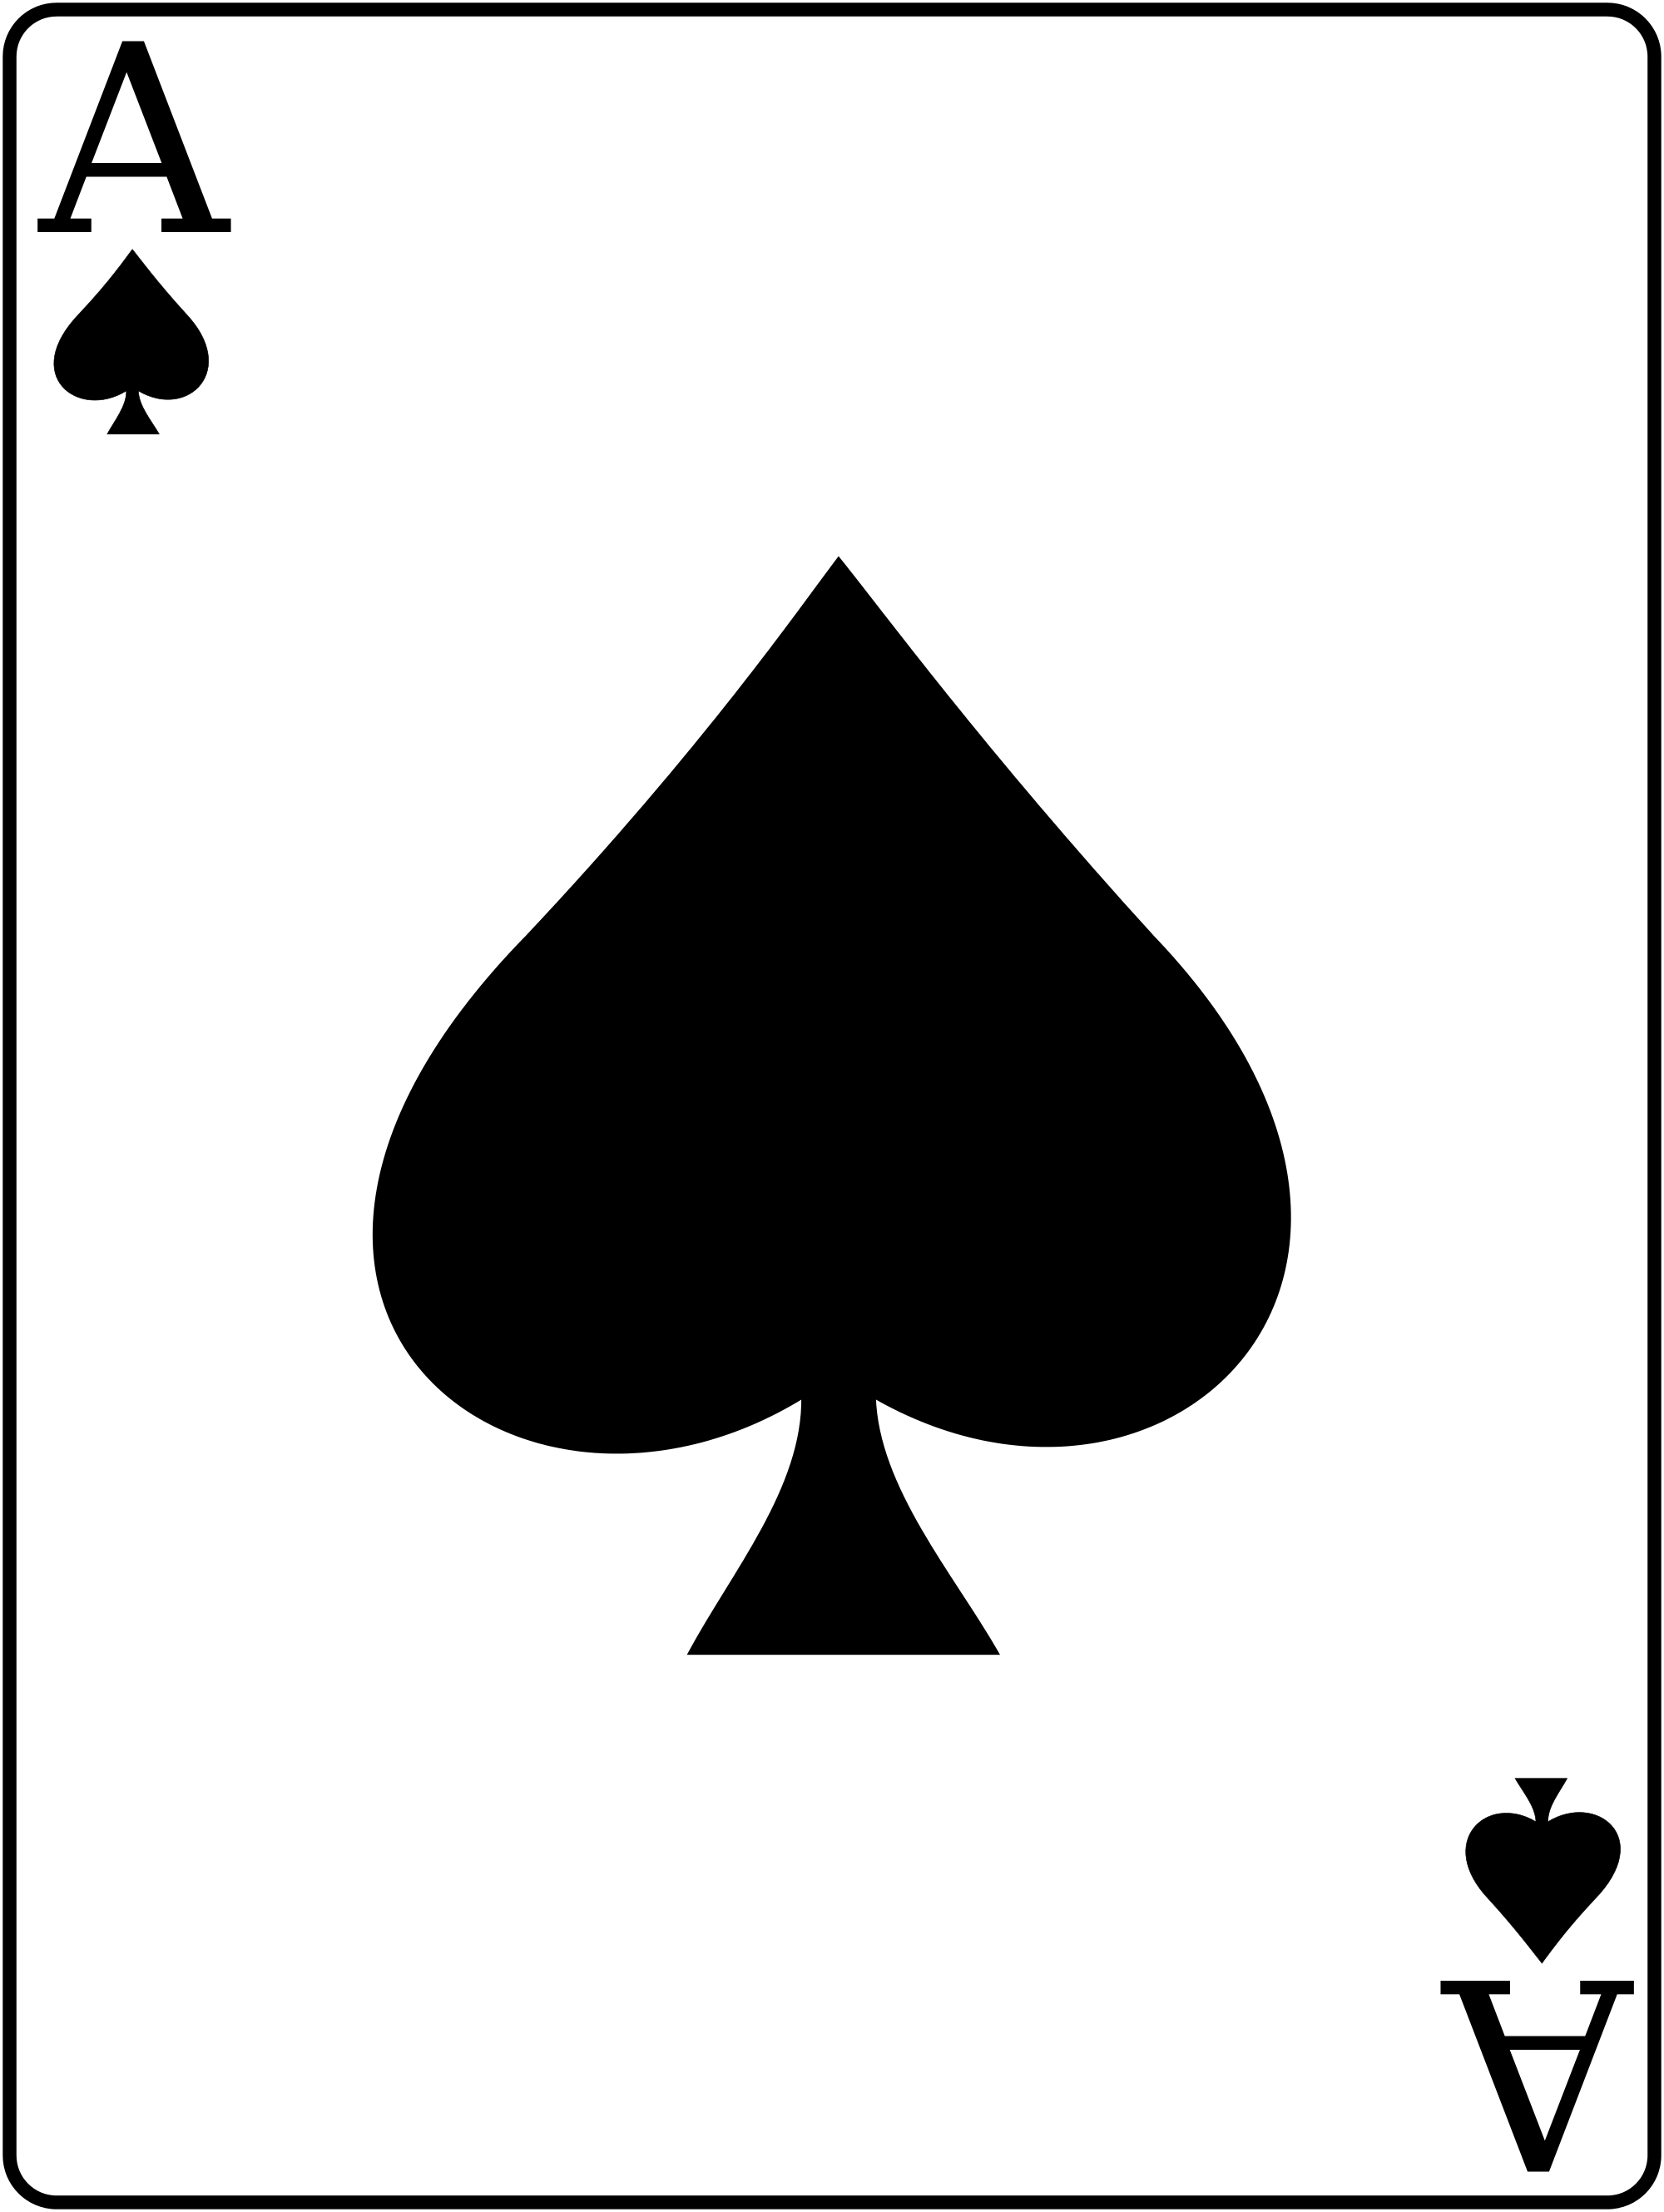 Ace Card PNG - 25974